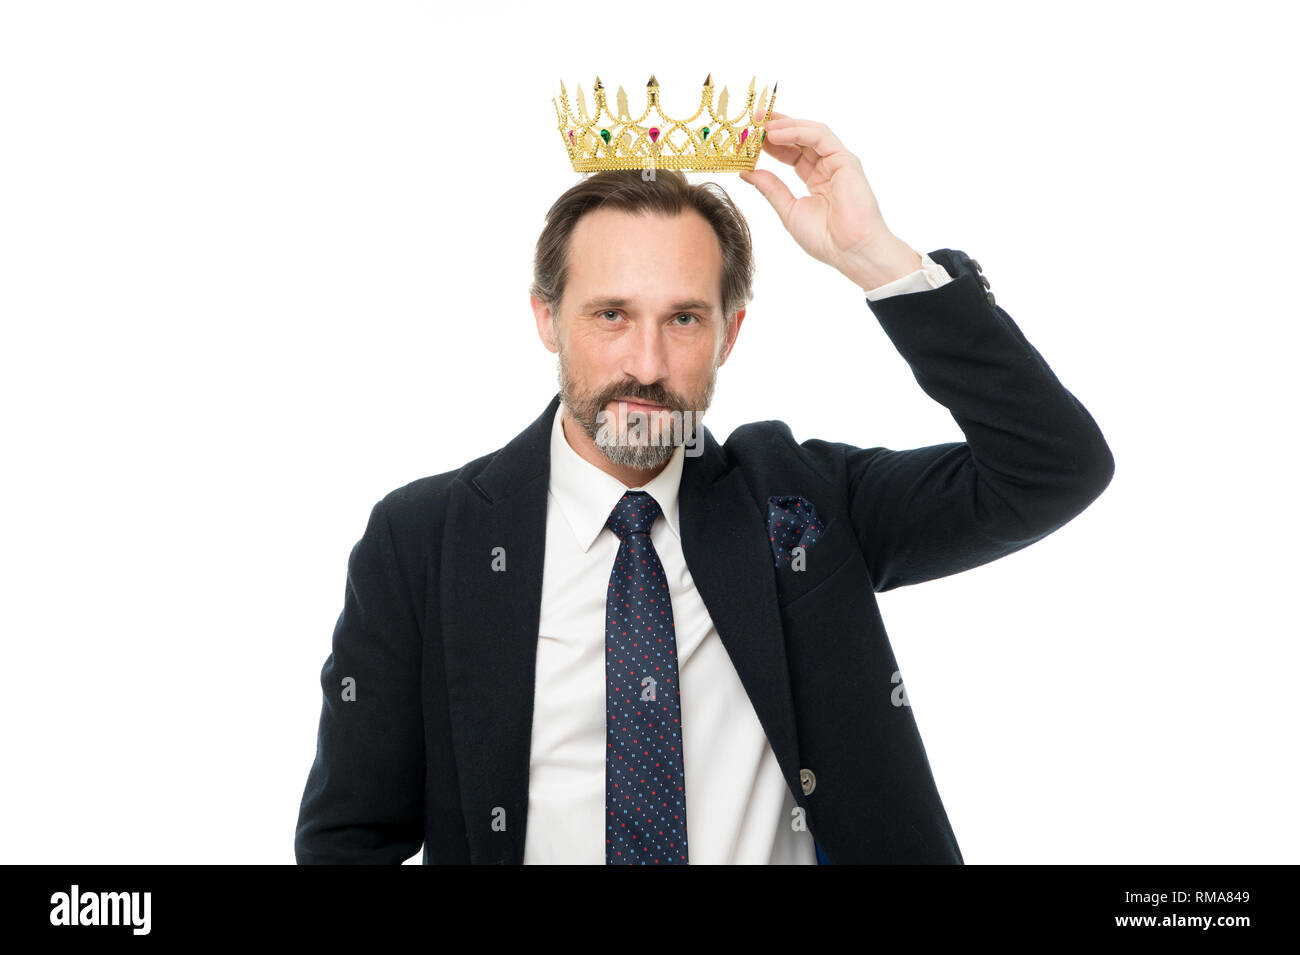 Man nature bearded guy in suit hold golden crown symbol of monarchy. Direct line to throne. Enormous privilege. Become king ceremony. King attribute. Become next king. Monarchy family traditions. - Stock Image